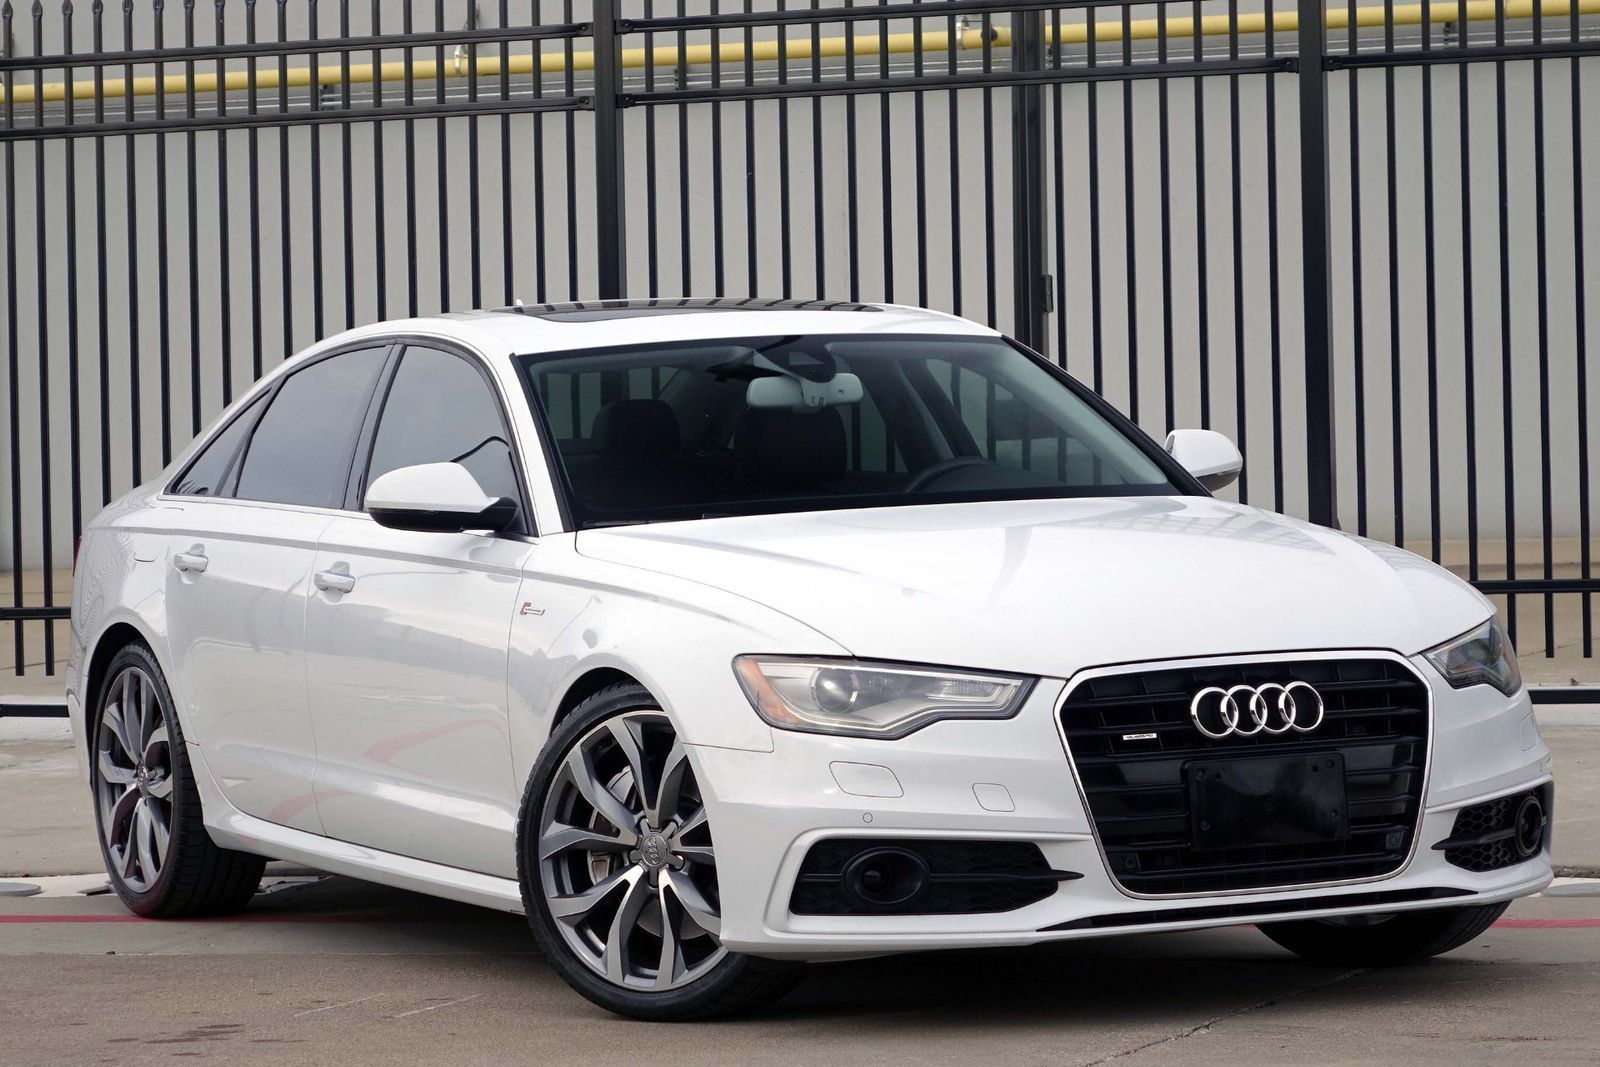 Audi A6 For Sale >> Awesome 2012 Audi A6 3.0T Prestige * QUATTRO * 2012 White A6 * Drivers Assistance Pkg * Blind ...